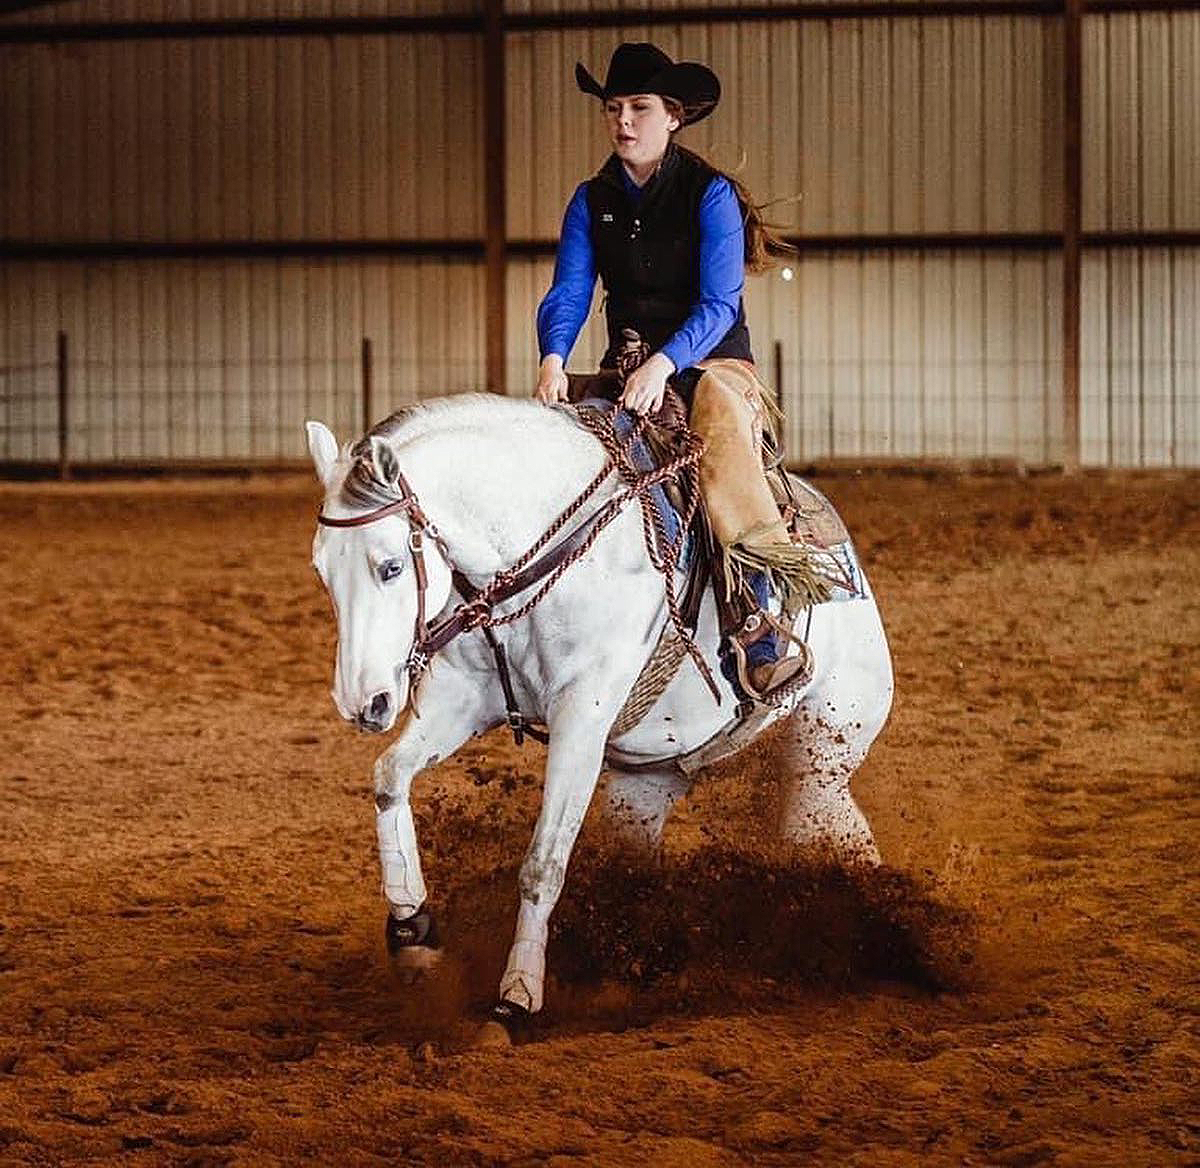 JoBeth Scarlett, a sophomore animal science major from New Market, Tenn., rode Dontjacwithmyspook to the ASHA National Novice Trail, Reining and Cow horse Class championship in the National Champion, Novice division April 16-17 in the Nolan County Coliseum in Sweetwater, Texas. (Submitted photo by Abbey Bratcher)